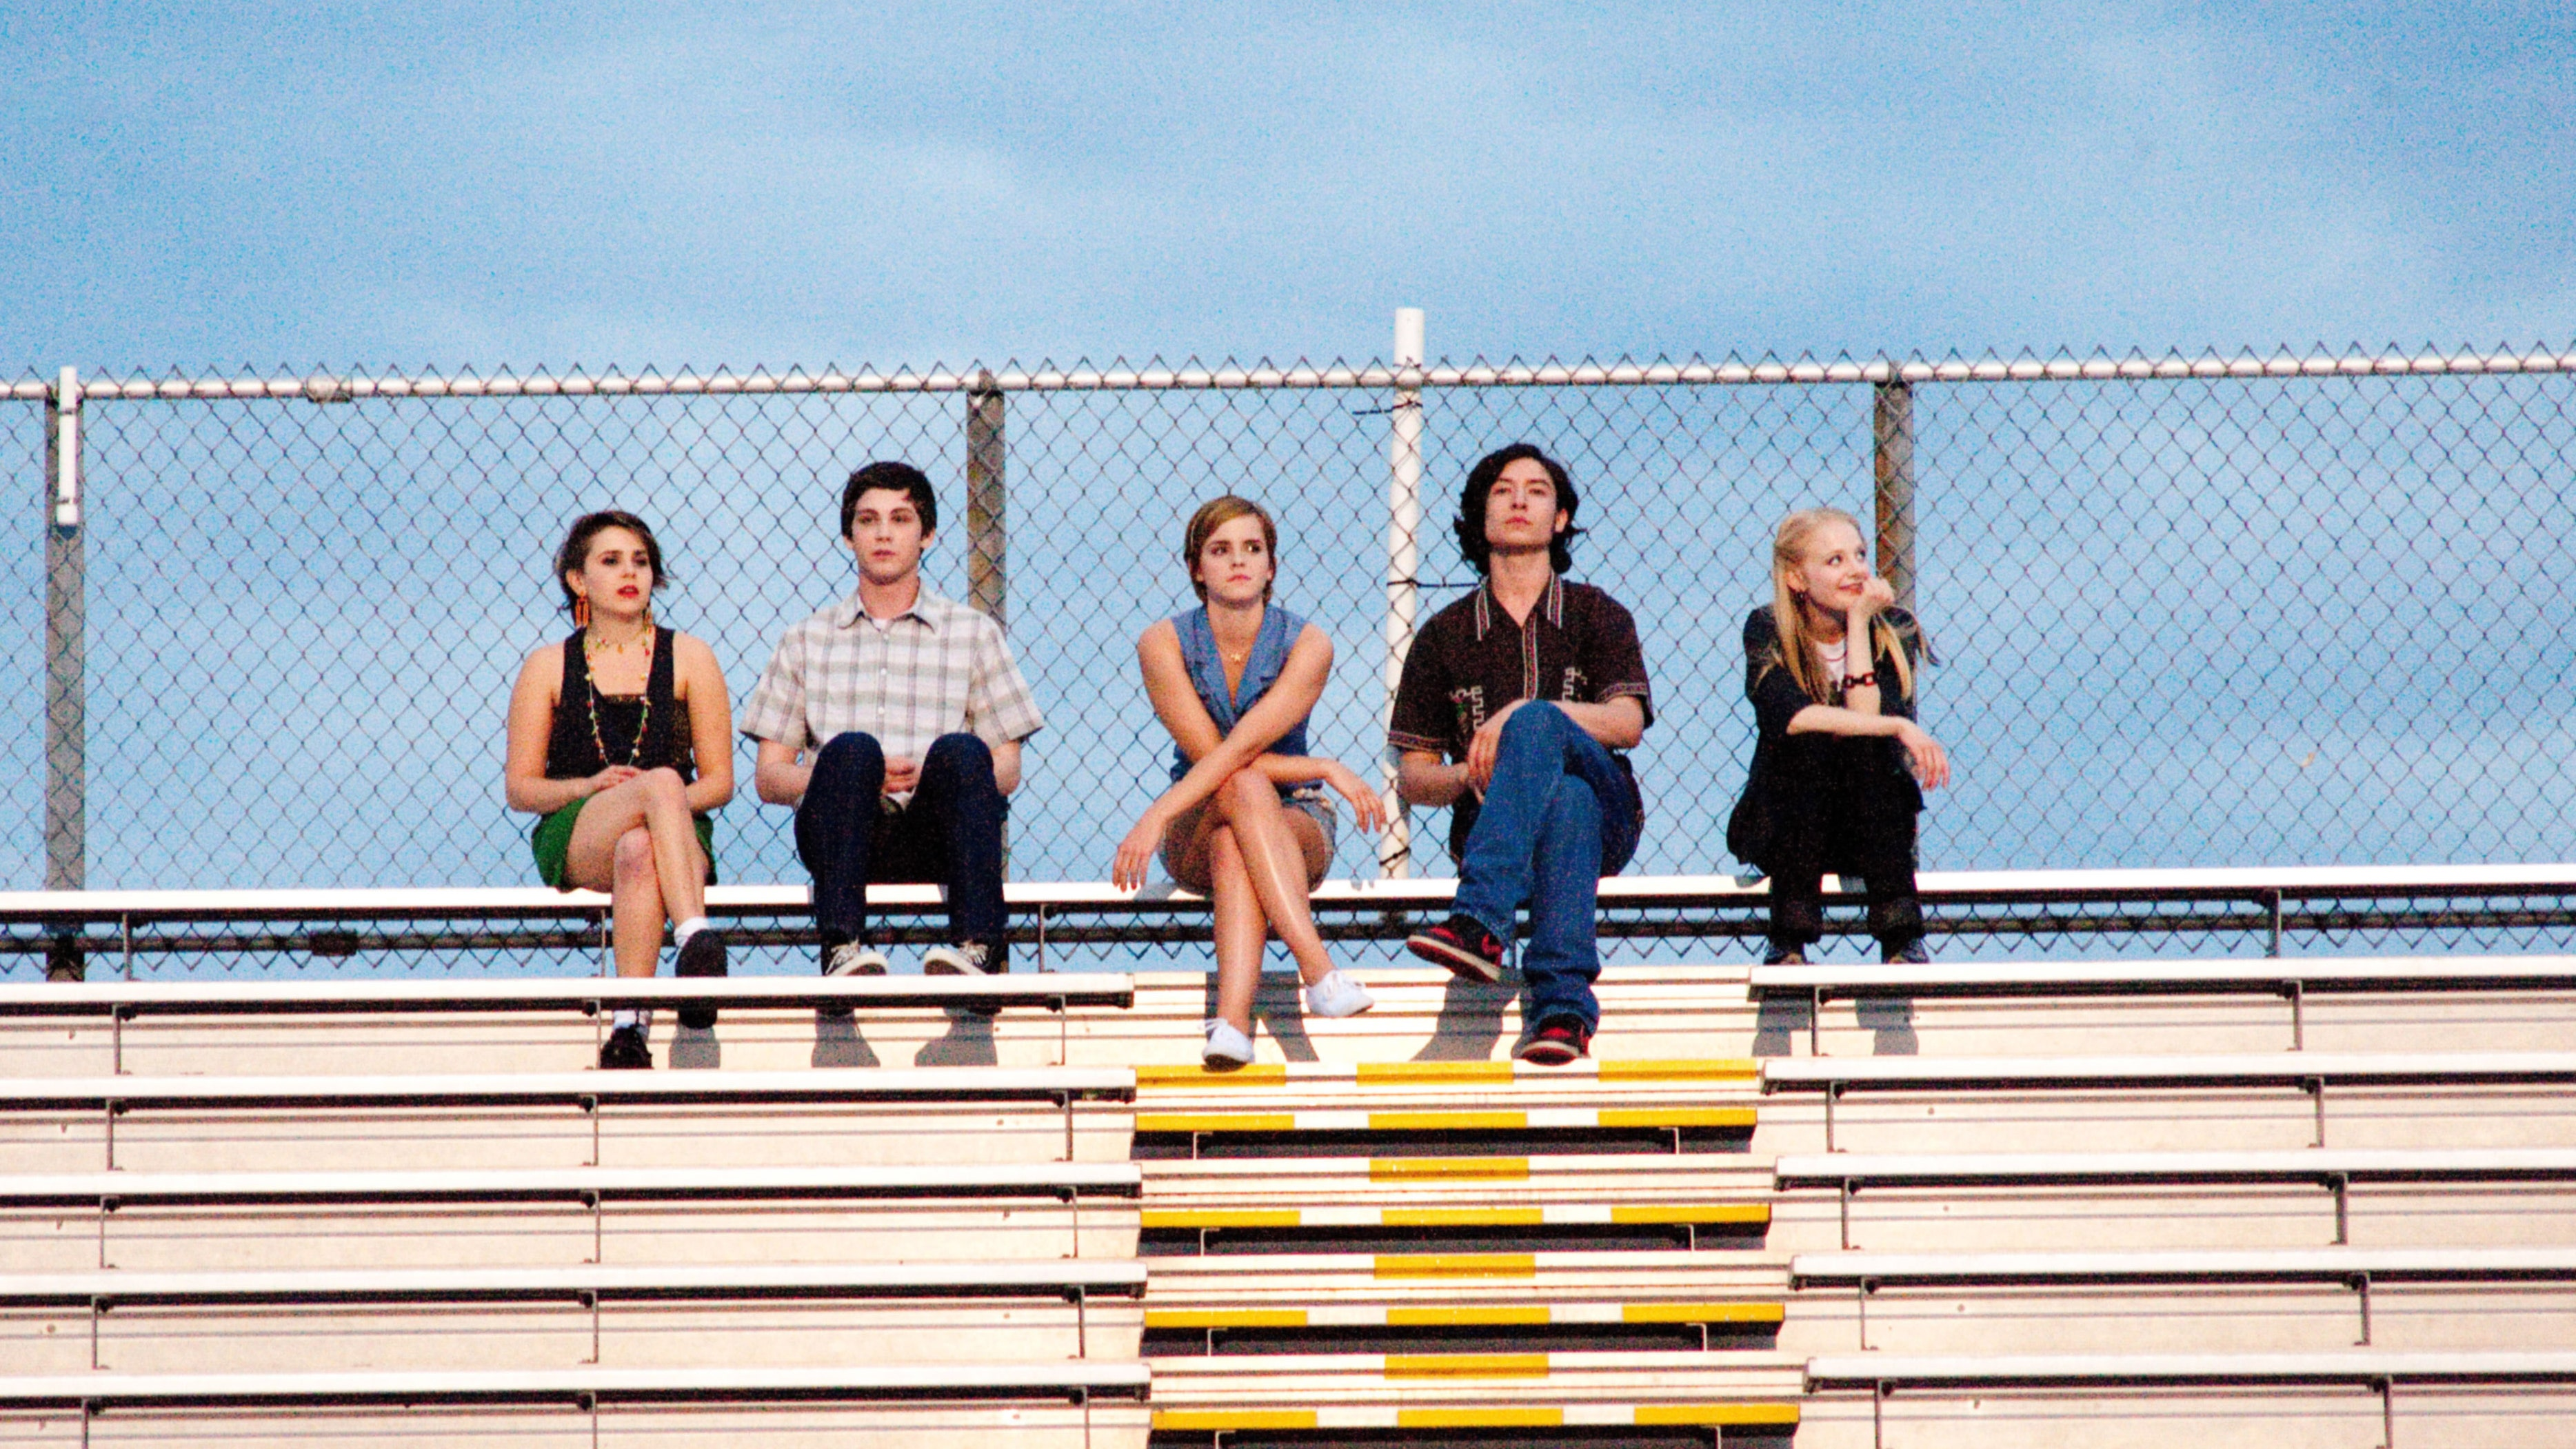 Movies to Watch if You Like The Perks of Being a Wallflower